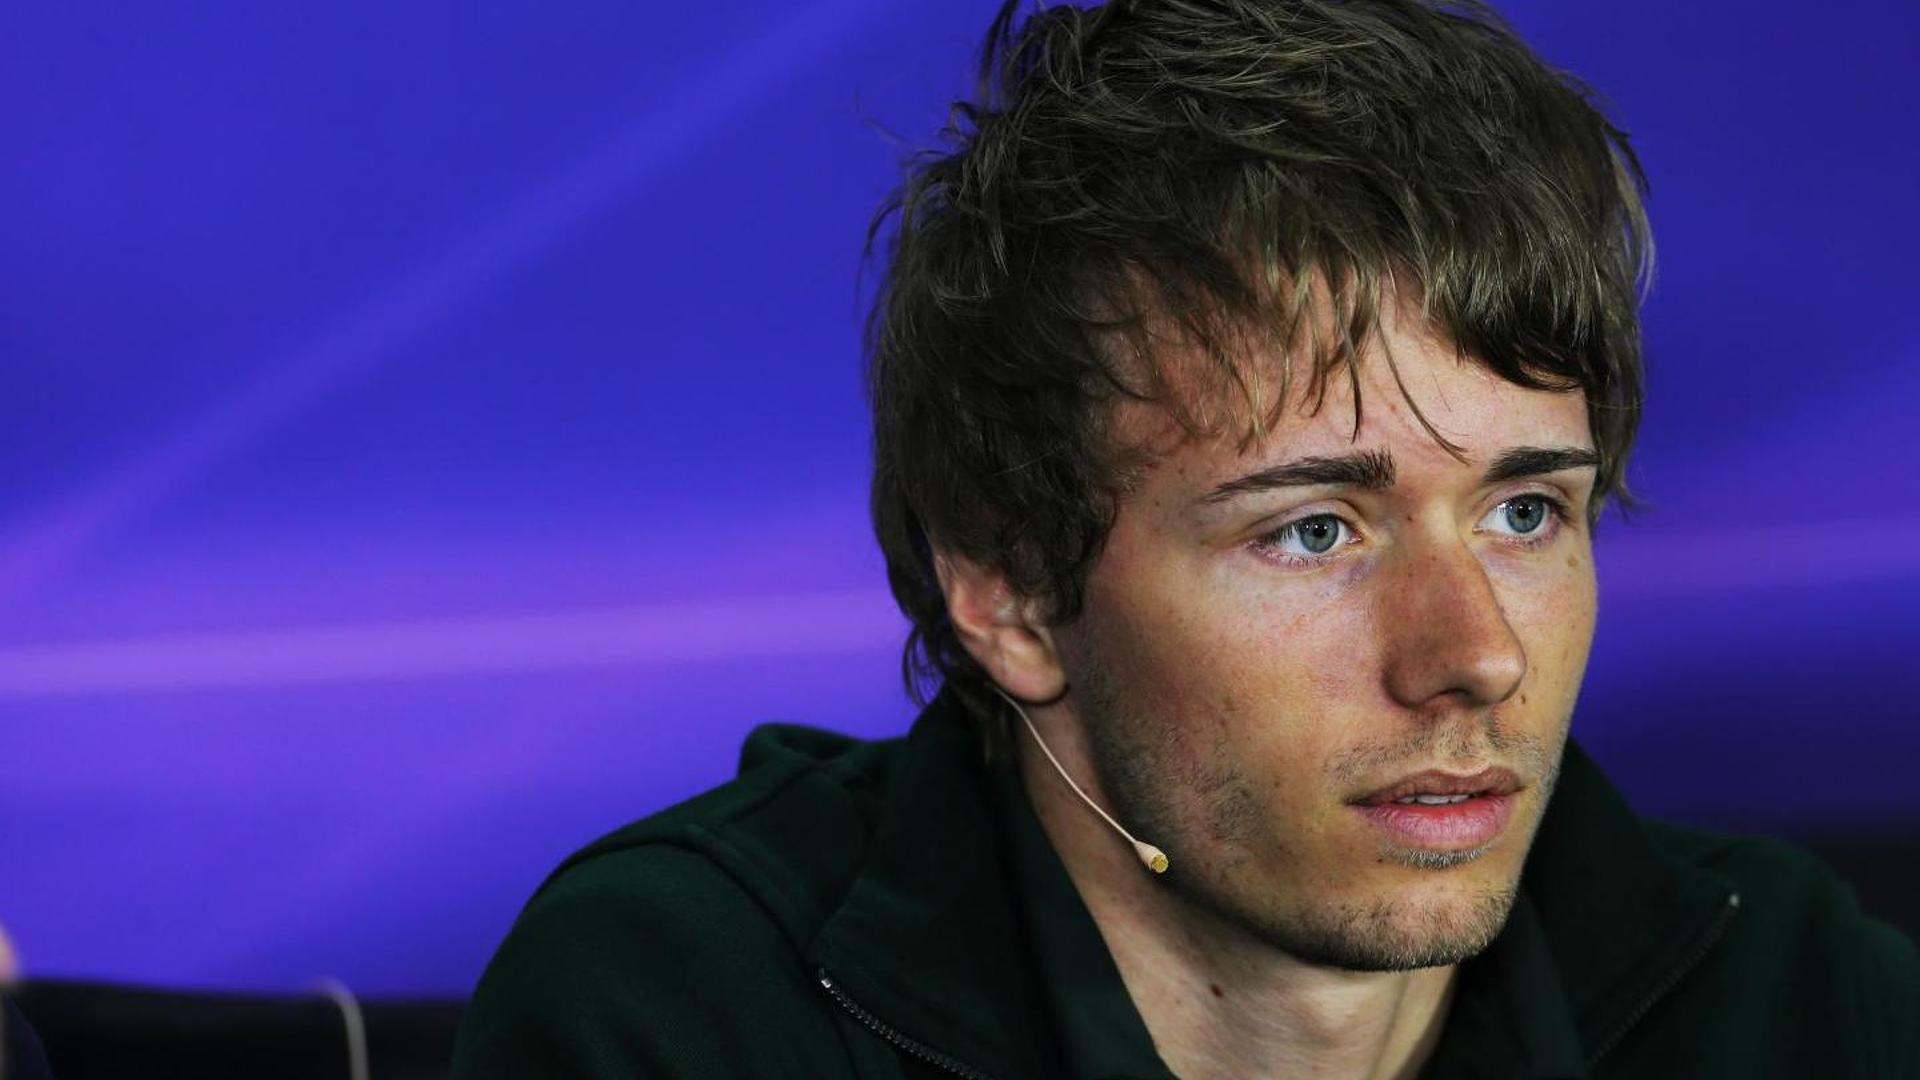 Pic 'waiting' for 2014 Caterham-Renault contract